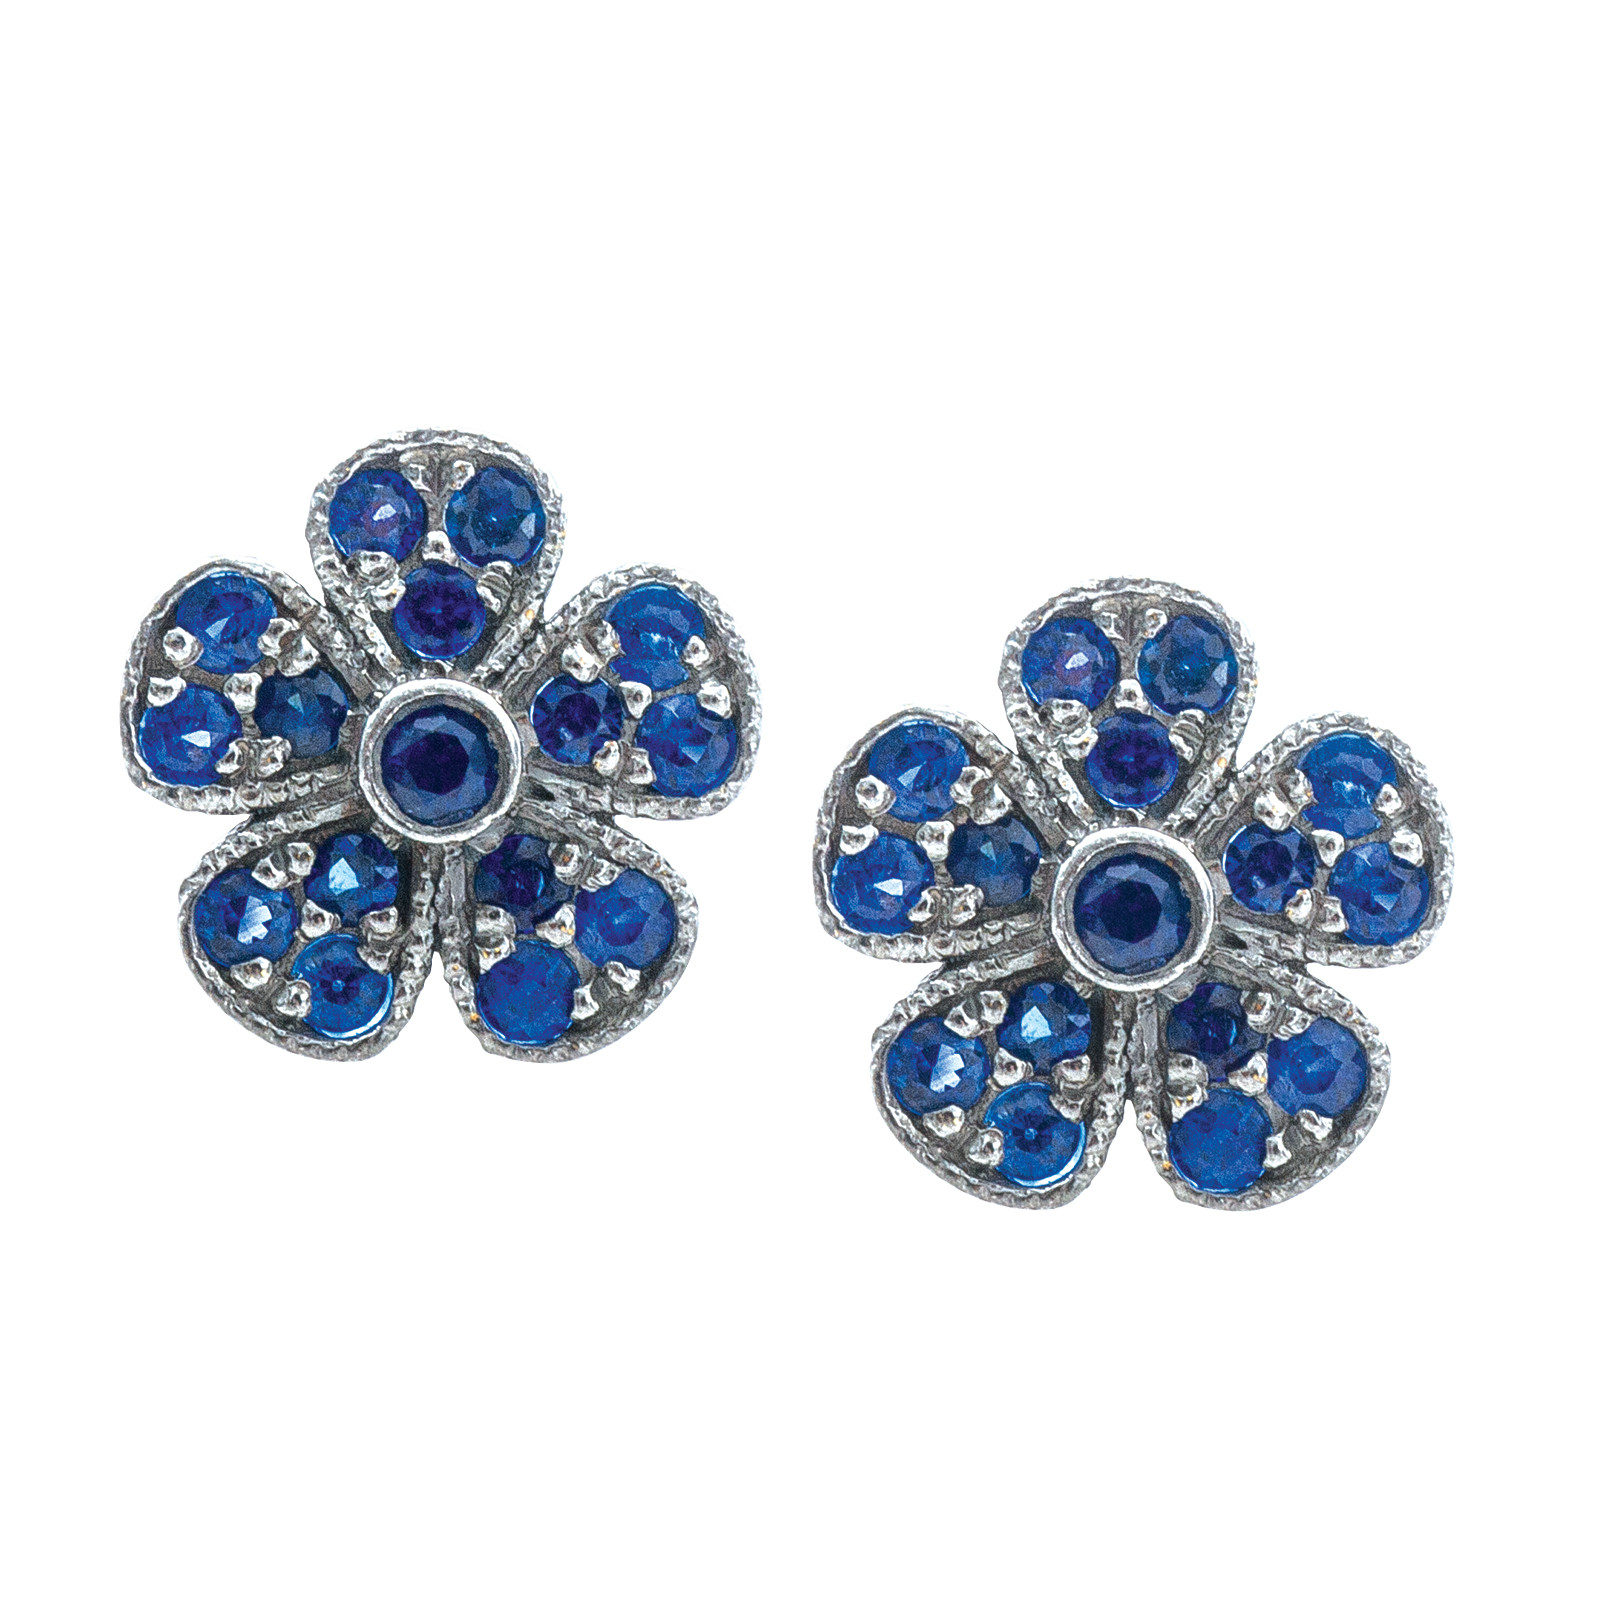 Vintage Colette Steckel Flores Blue Sapphire Earrings